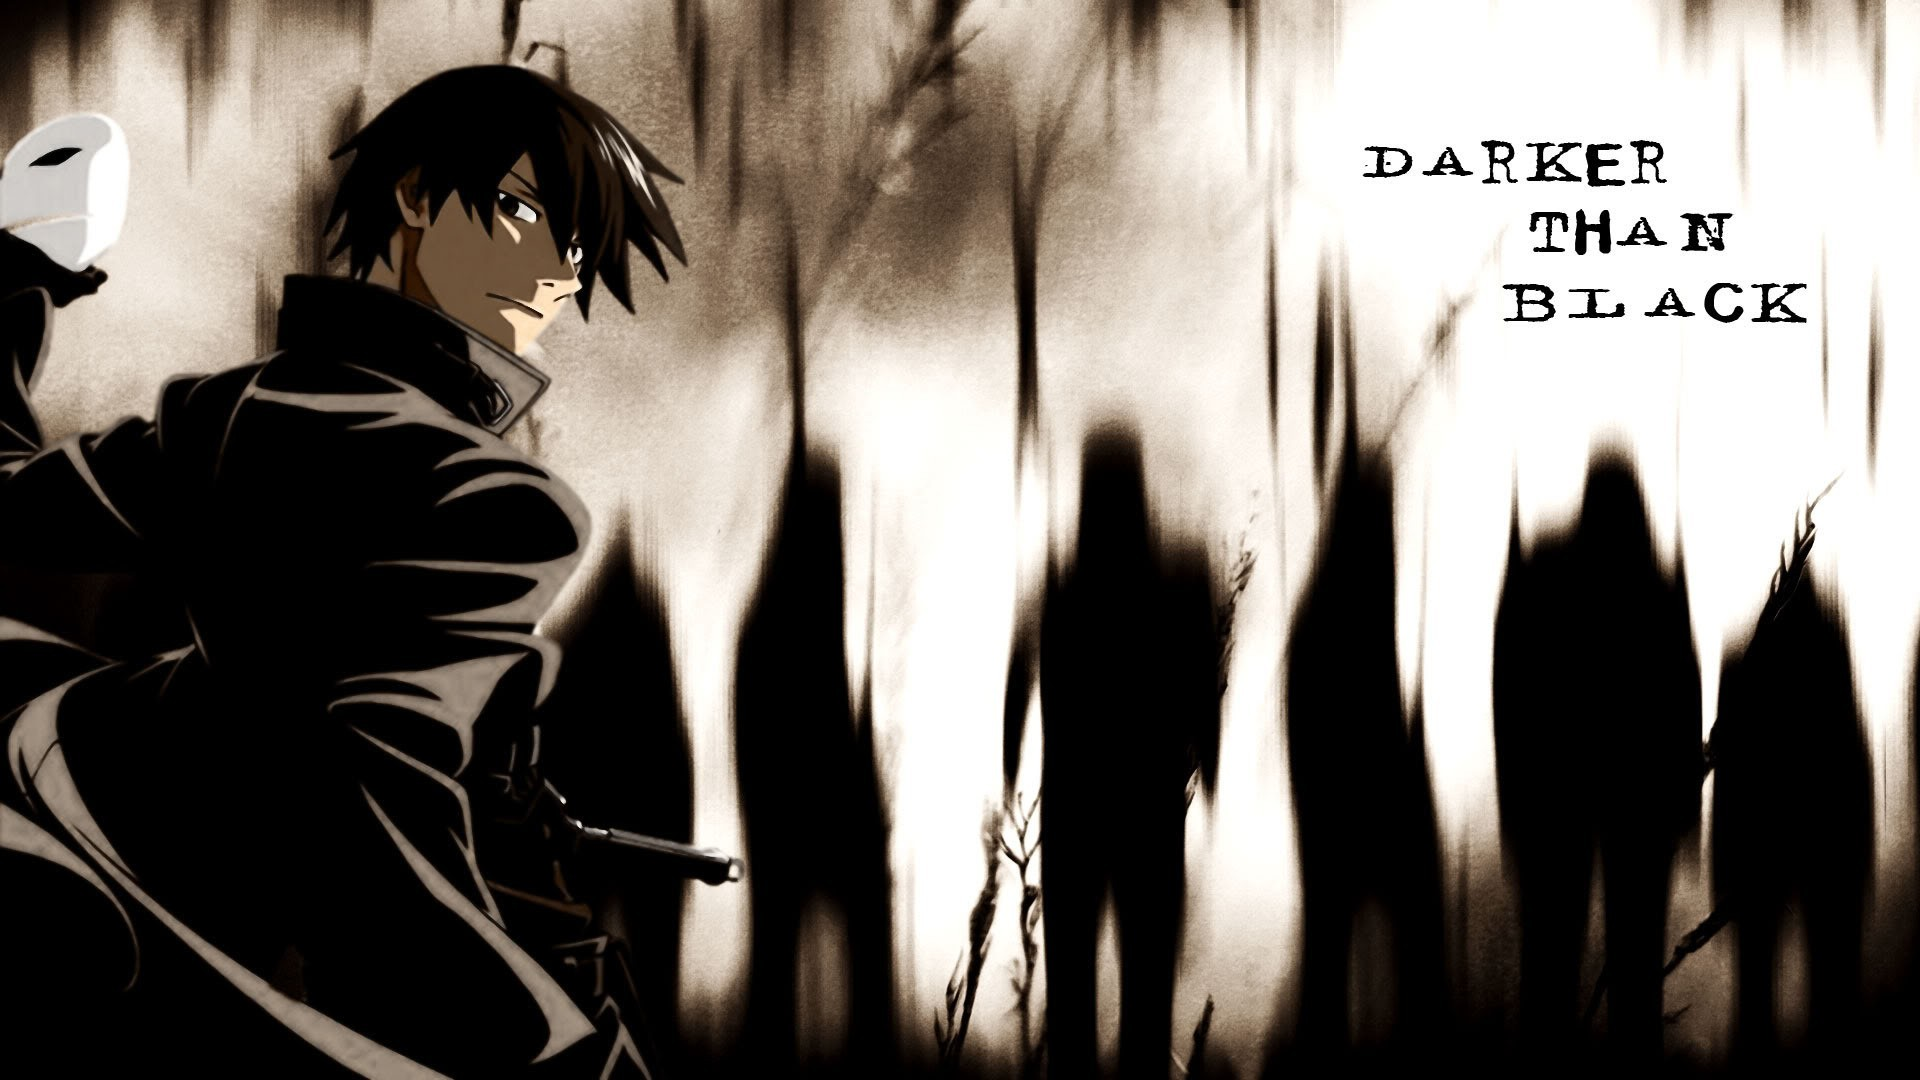 1920x1080 Cool Darker Than Black.